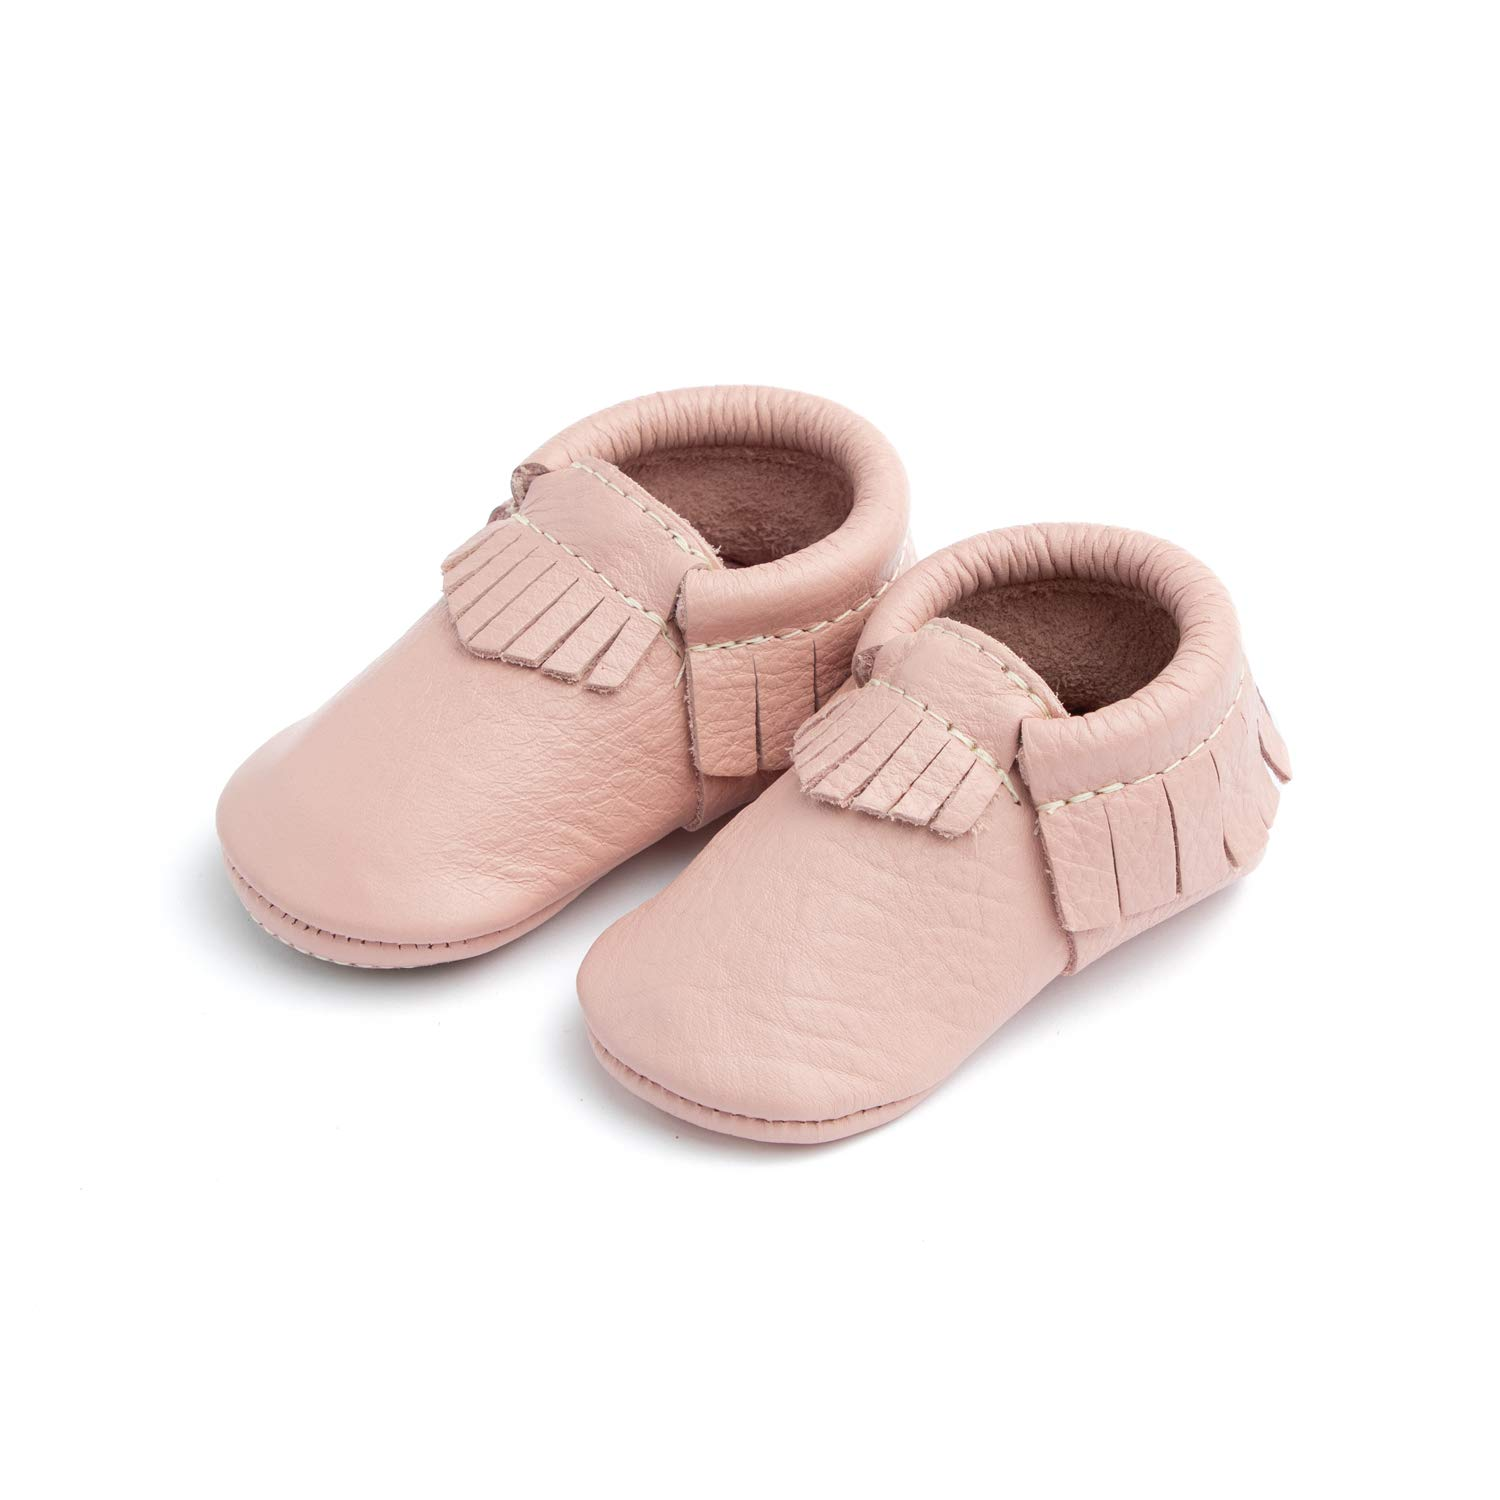 Freshly Picked Moccasin Mini Sole